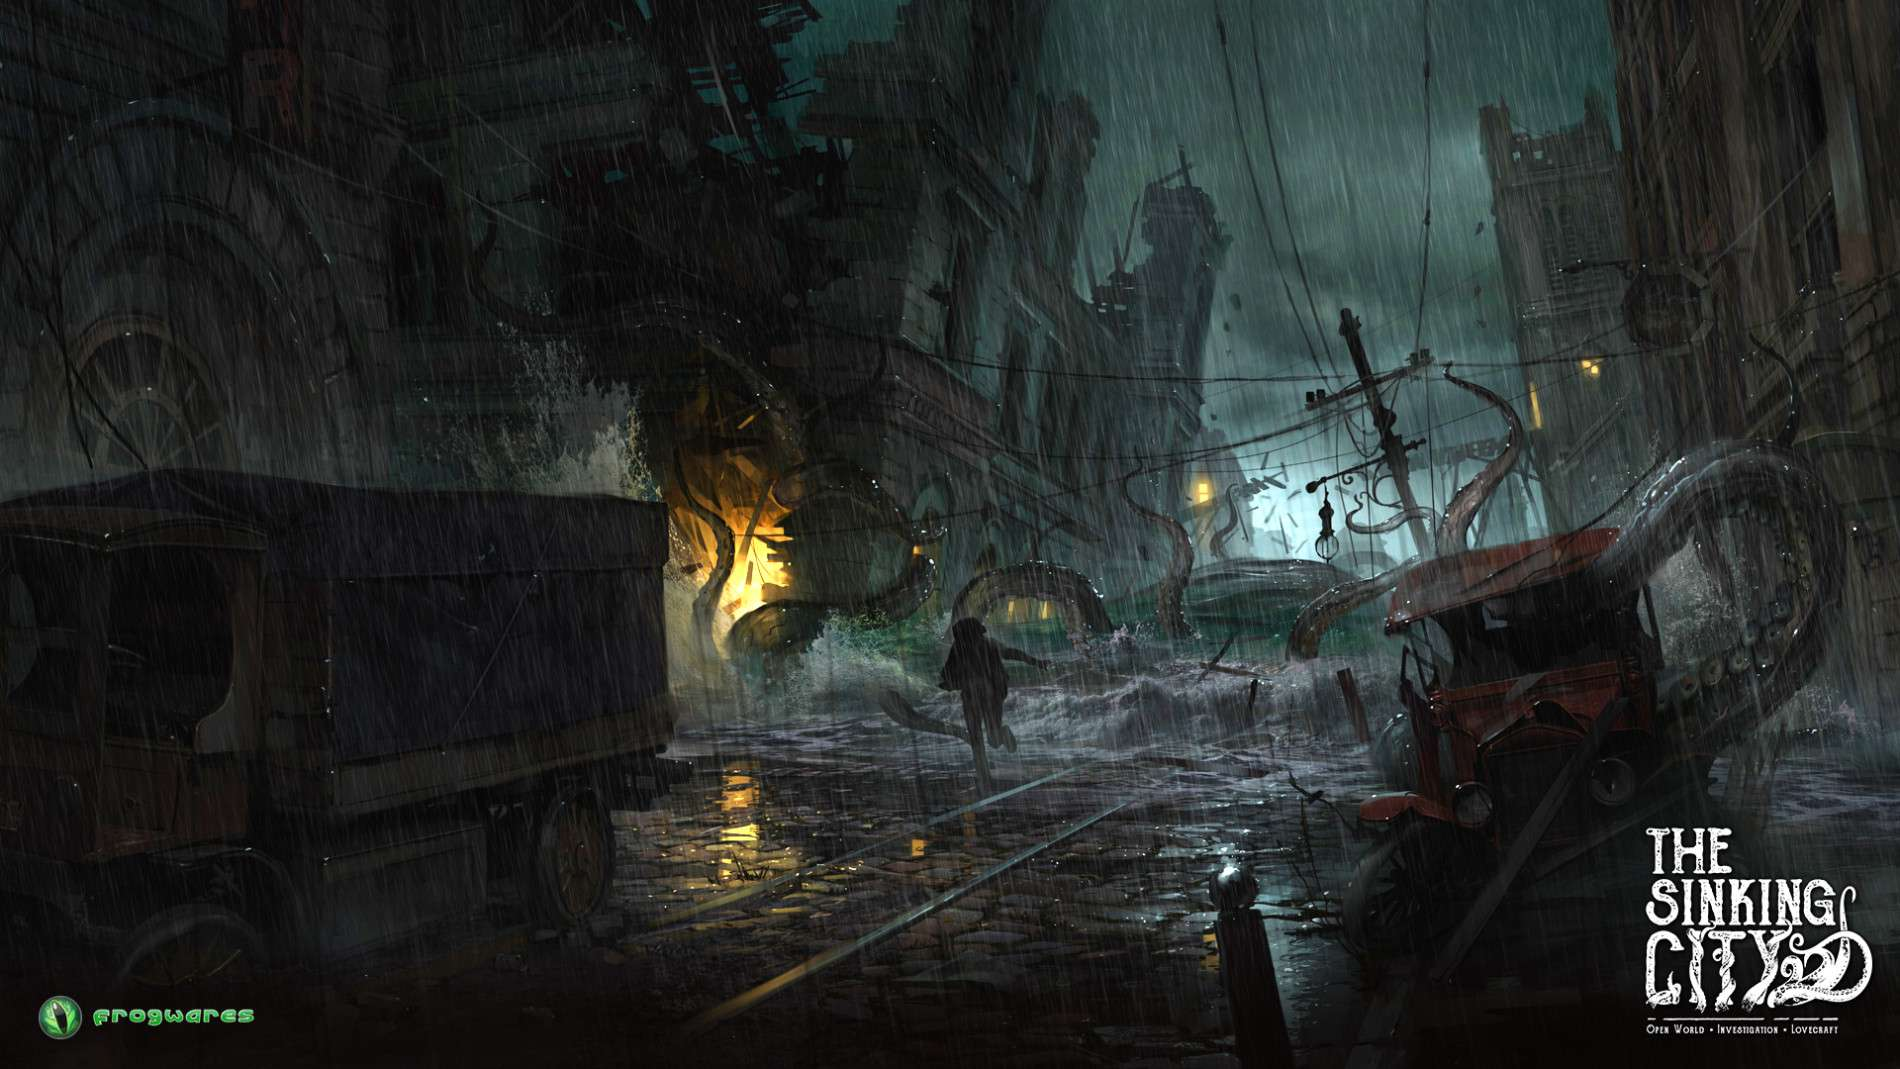 The Sinking City #7